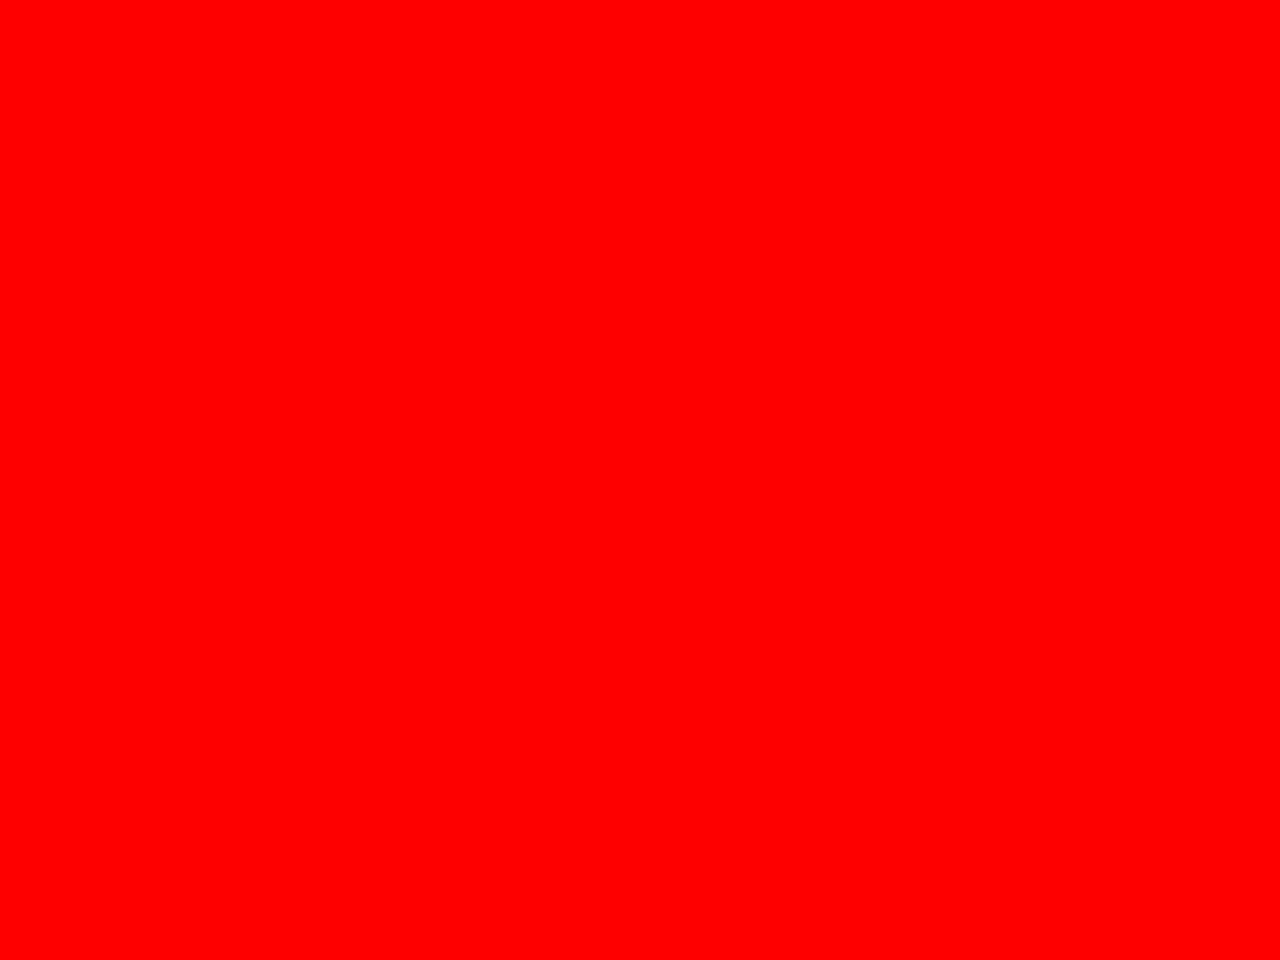 1280x960 Red Solid Color Background